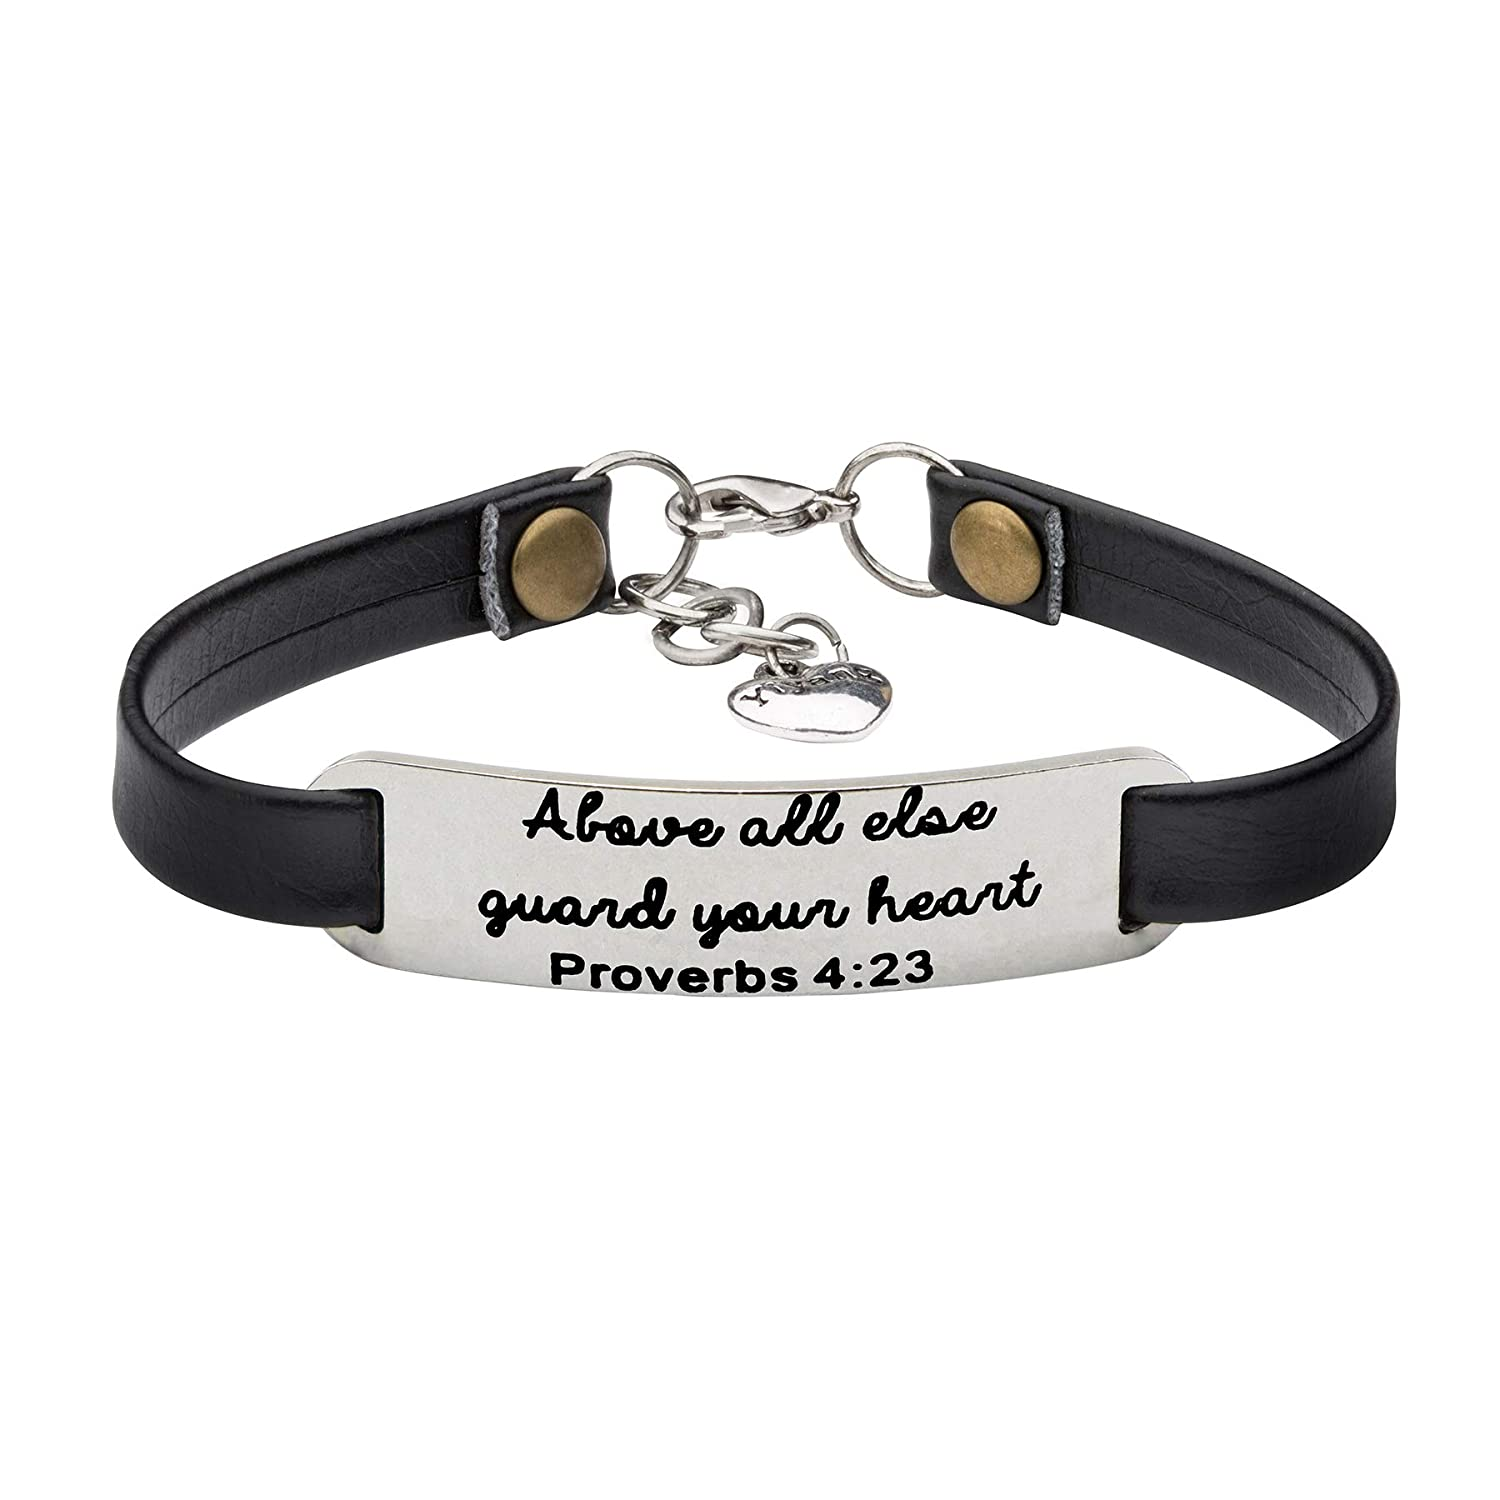 UNQJRY Religious Bracelets for Women Christian Leather Bracelet Inspirational Gifts for Her